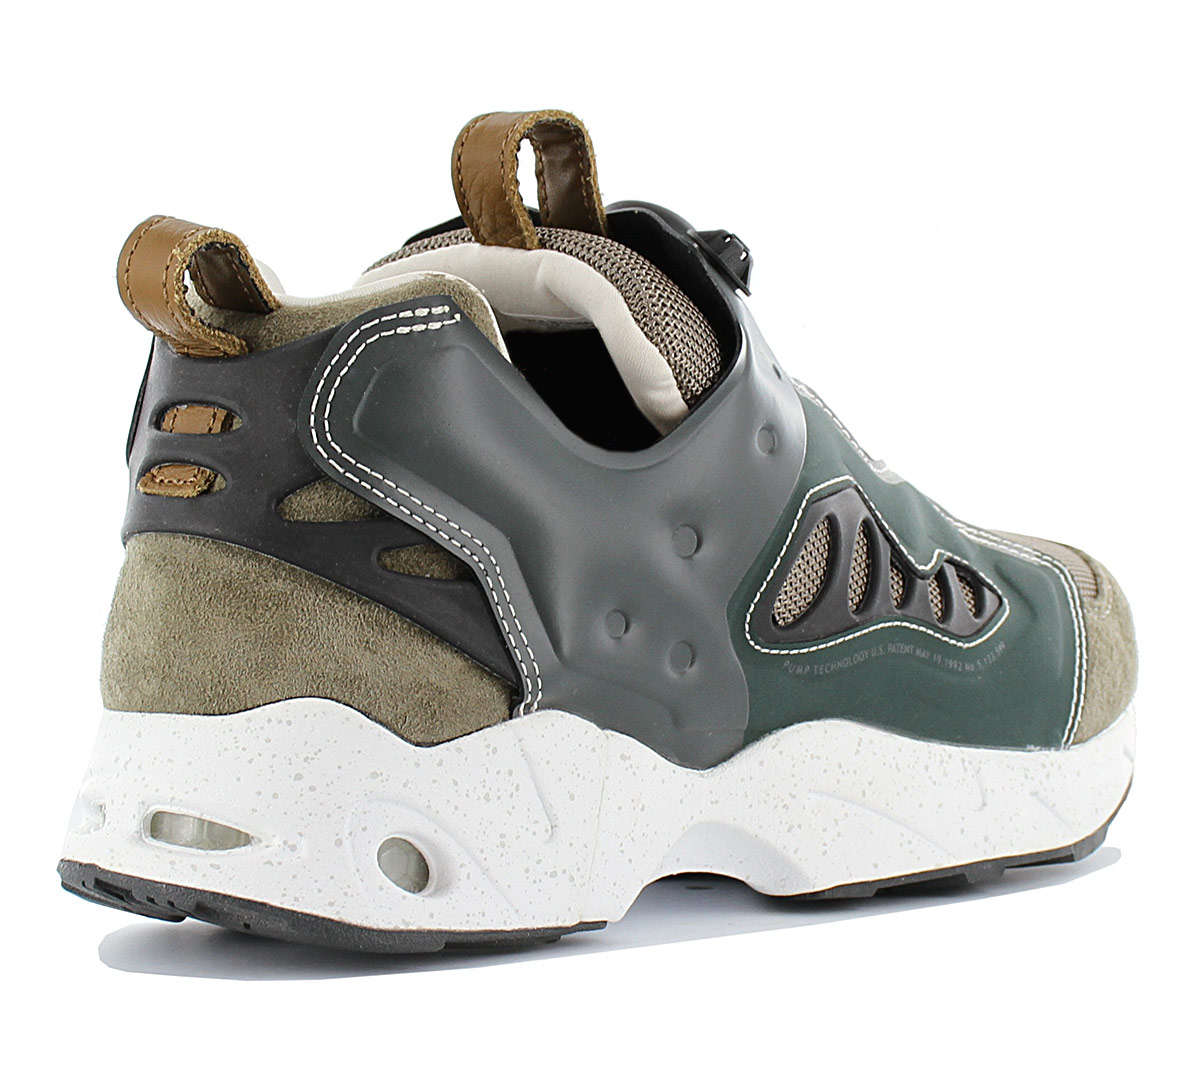 32505d93f6303 Reebok x Garbstore Instapump Fury Road (Cliffstone) Shoes Trainers ...